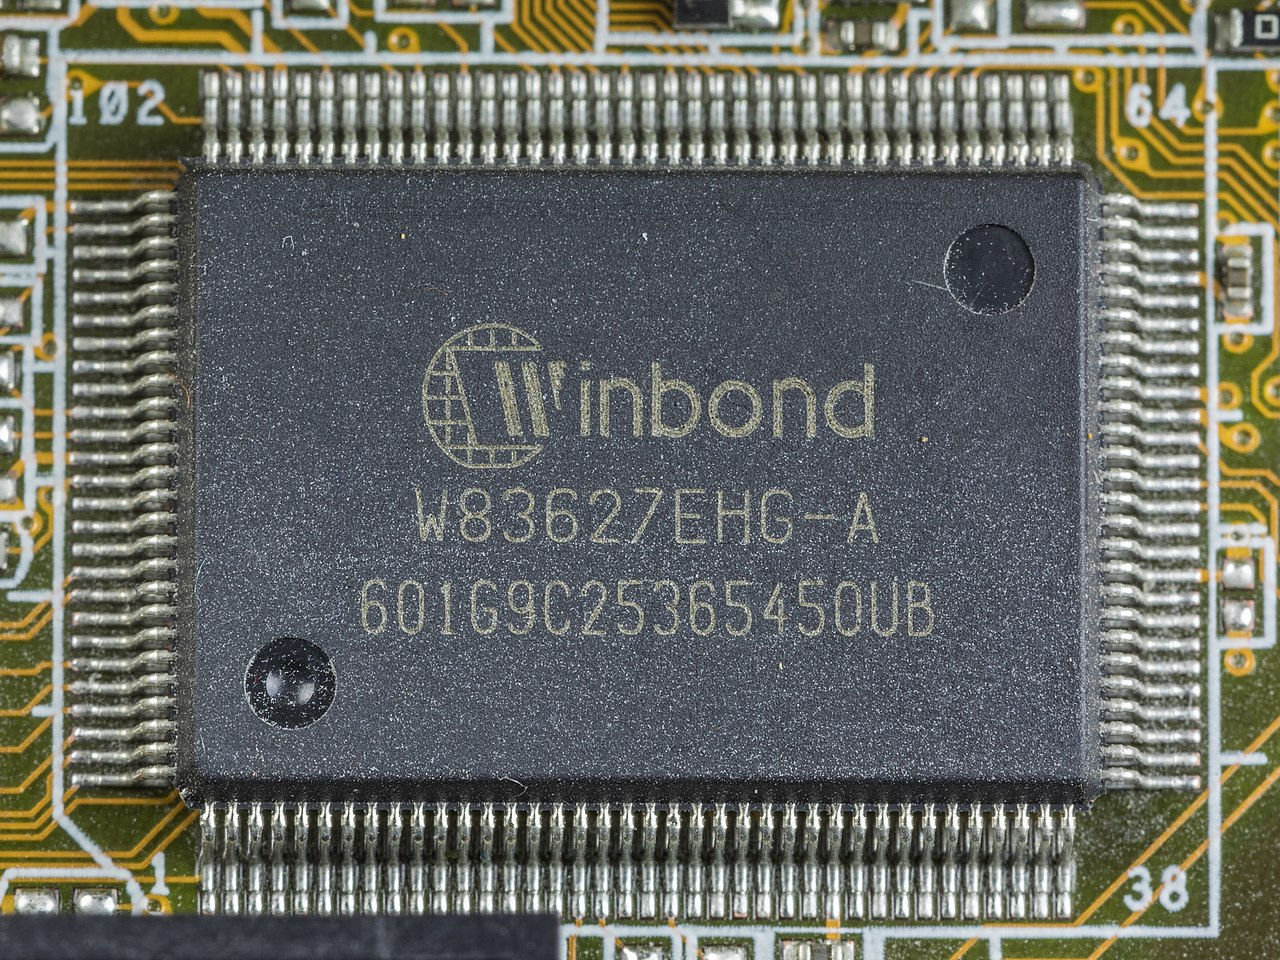 WINBOND W83627EHG-A DRIVERS FOR MAC DOWNLOAD